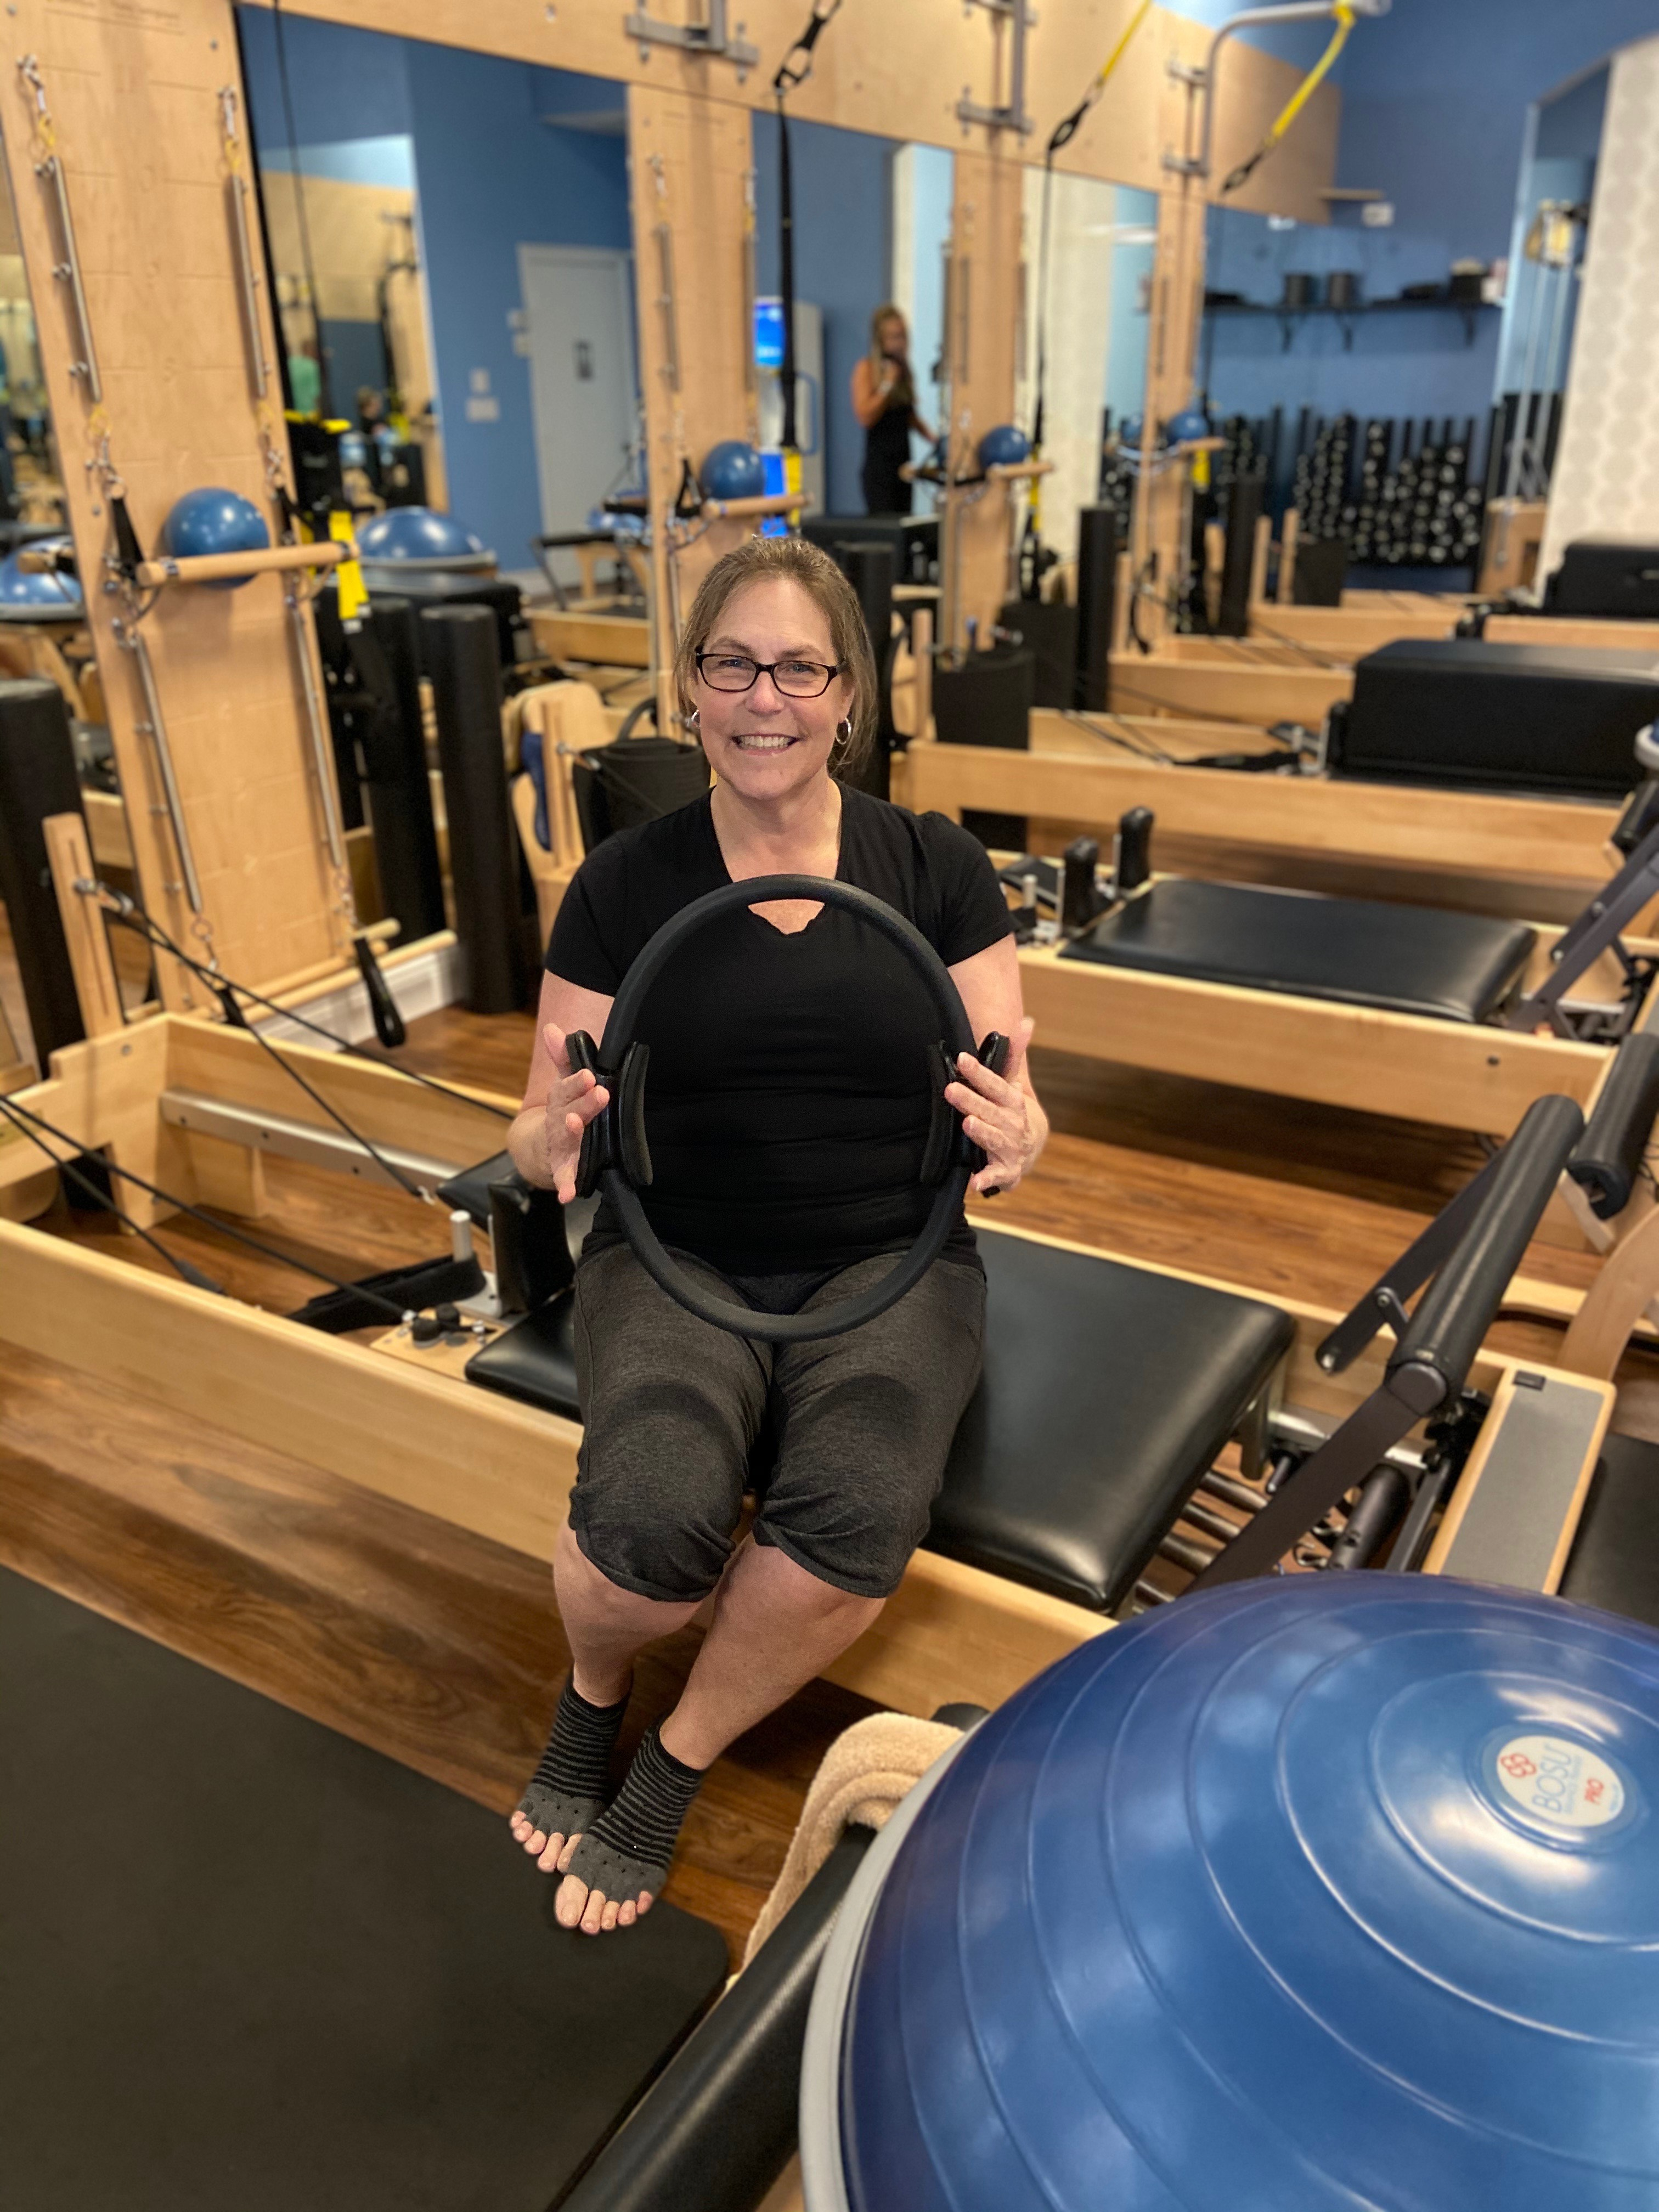 Reducing Pain From Multiple Herniated Discs - Michele's Story